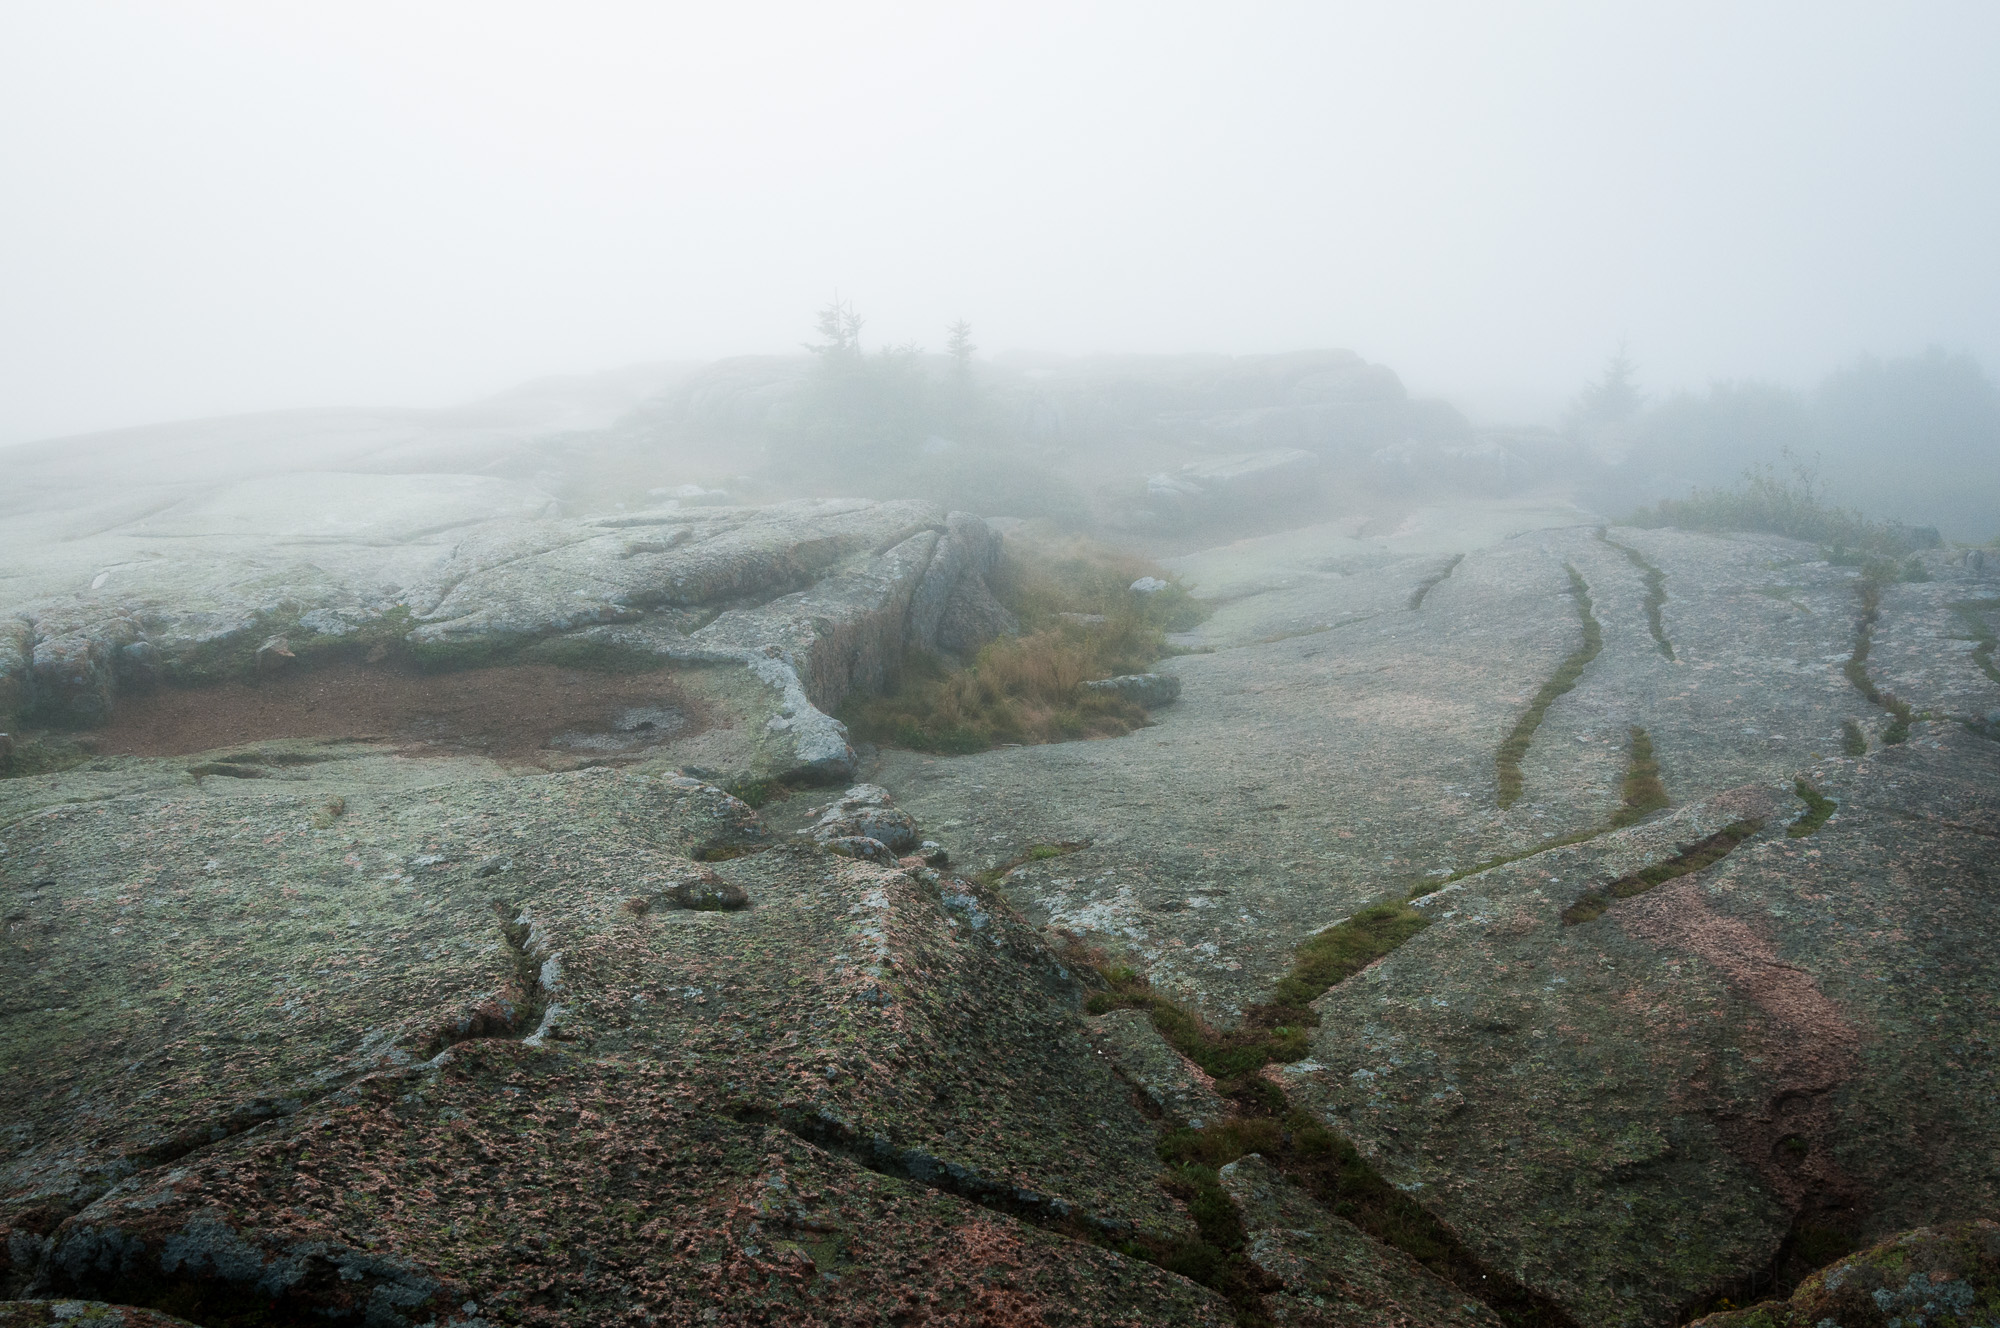 Interesting granite surfaces in the fog on Cadillac Mountain